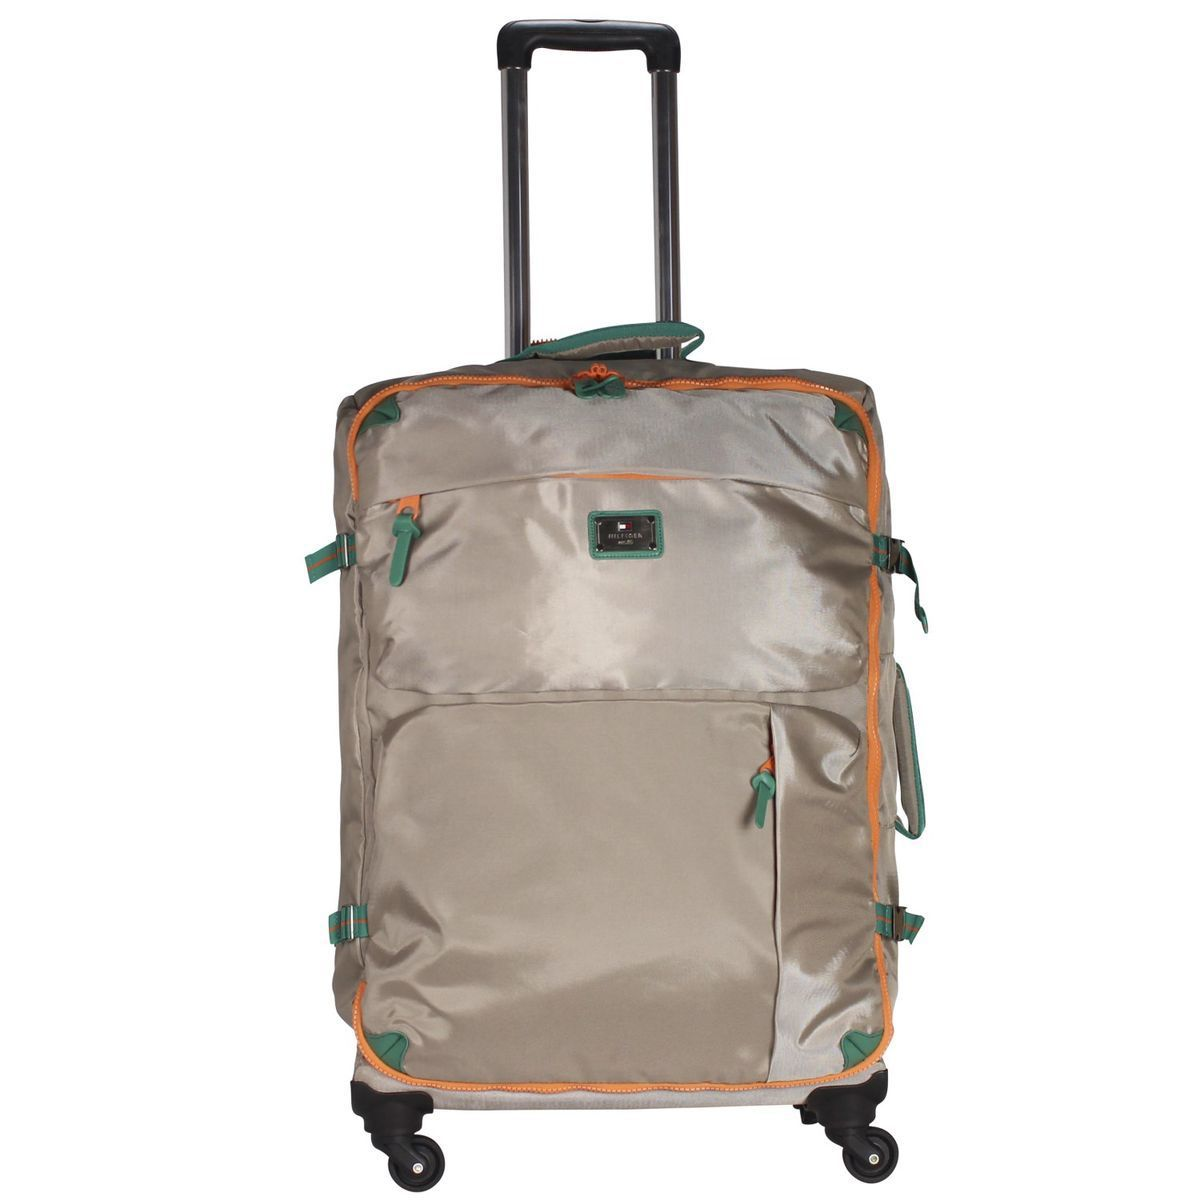 Tommy Hilfiger Burlington 4-Rollen Trolley 60 cm, dune